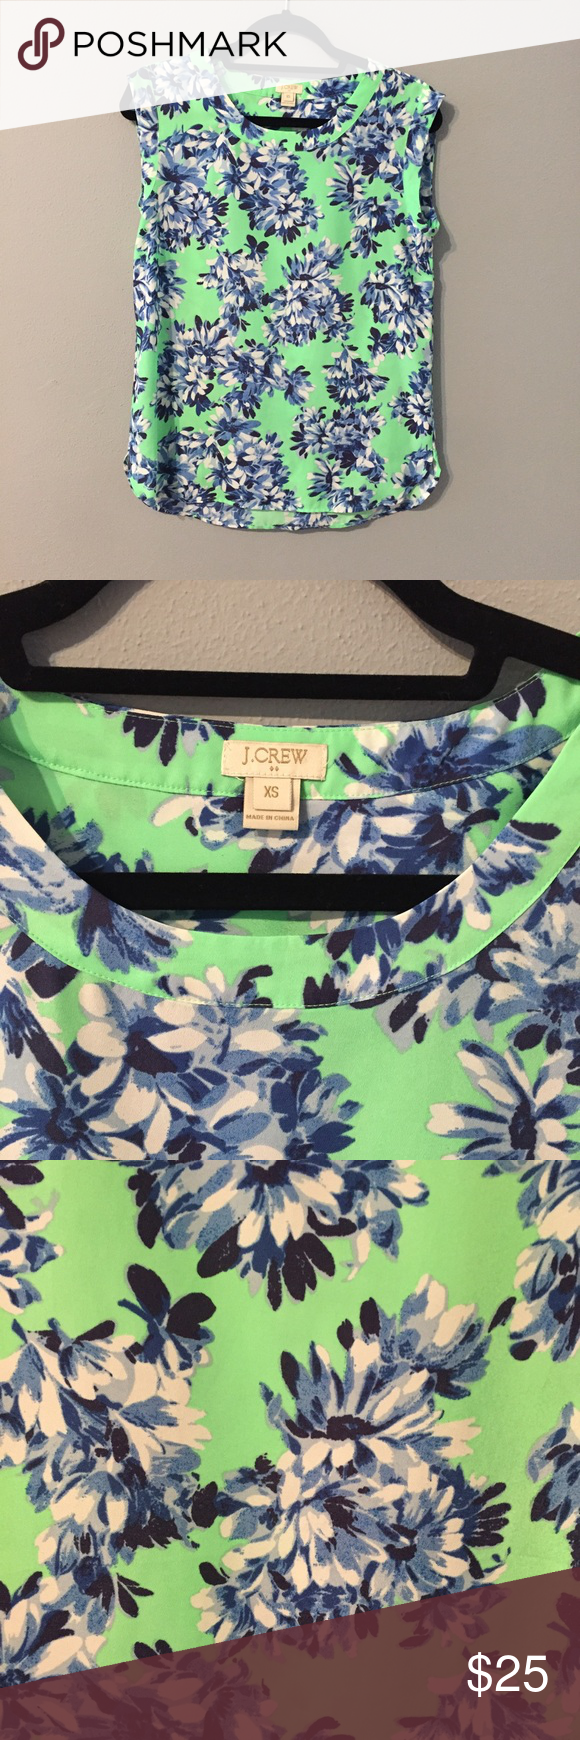 "J. Crew Bright Floral Shirt Fun and bright top that creates a flowy perfect spring time look. Length is 22.5"" measured from the collar to the bottom of the dress and ~19"" width measured below arms of top. Great, like new condition J. Crew Tops Blouses"